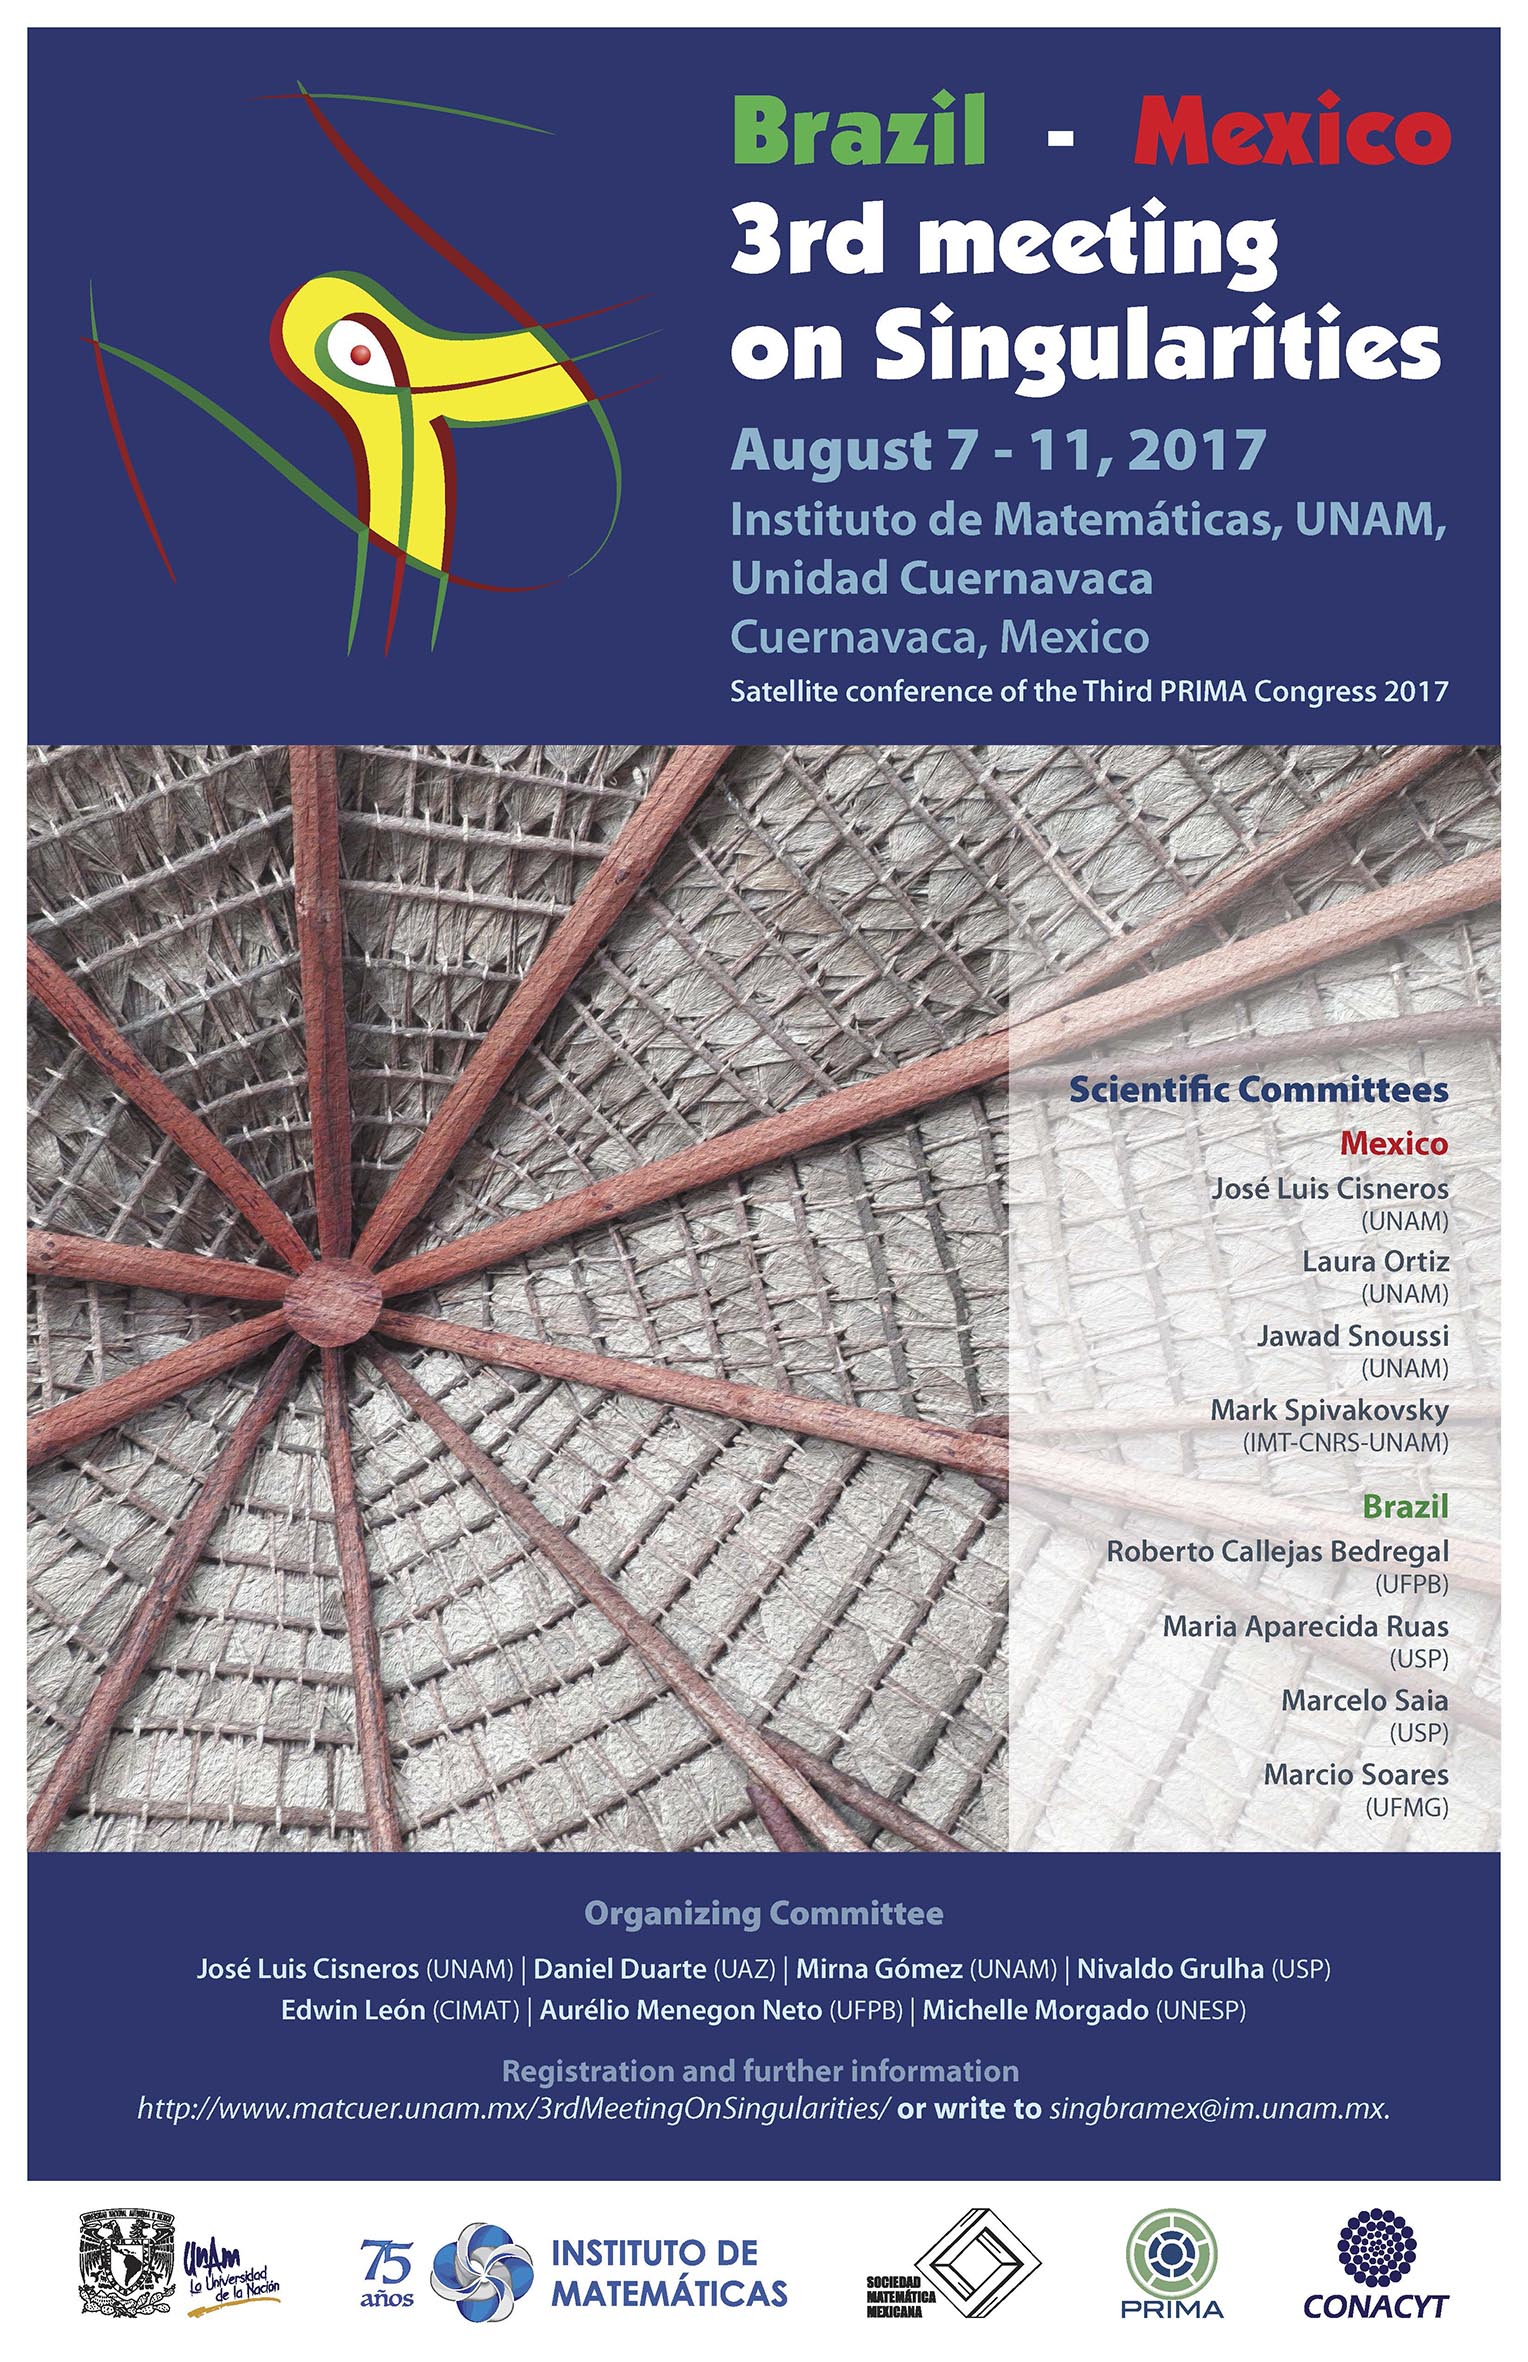 Brazil - Mexico, 3rd Meeting on Singularities, Satellite conference of the 3rd PRIMA Congress 2017